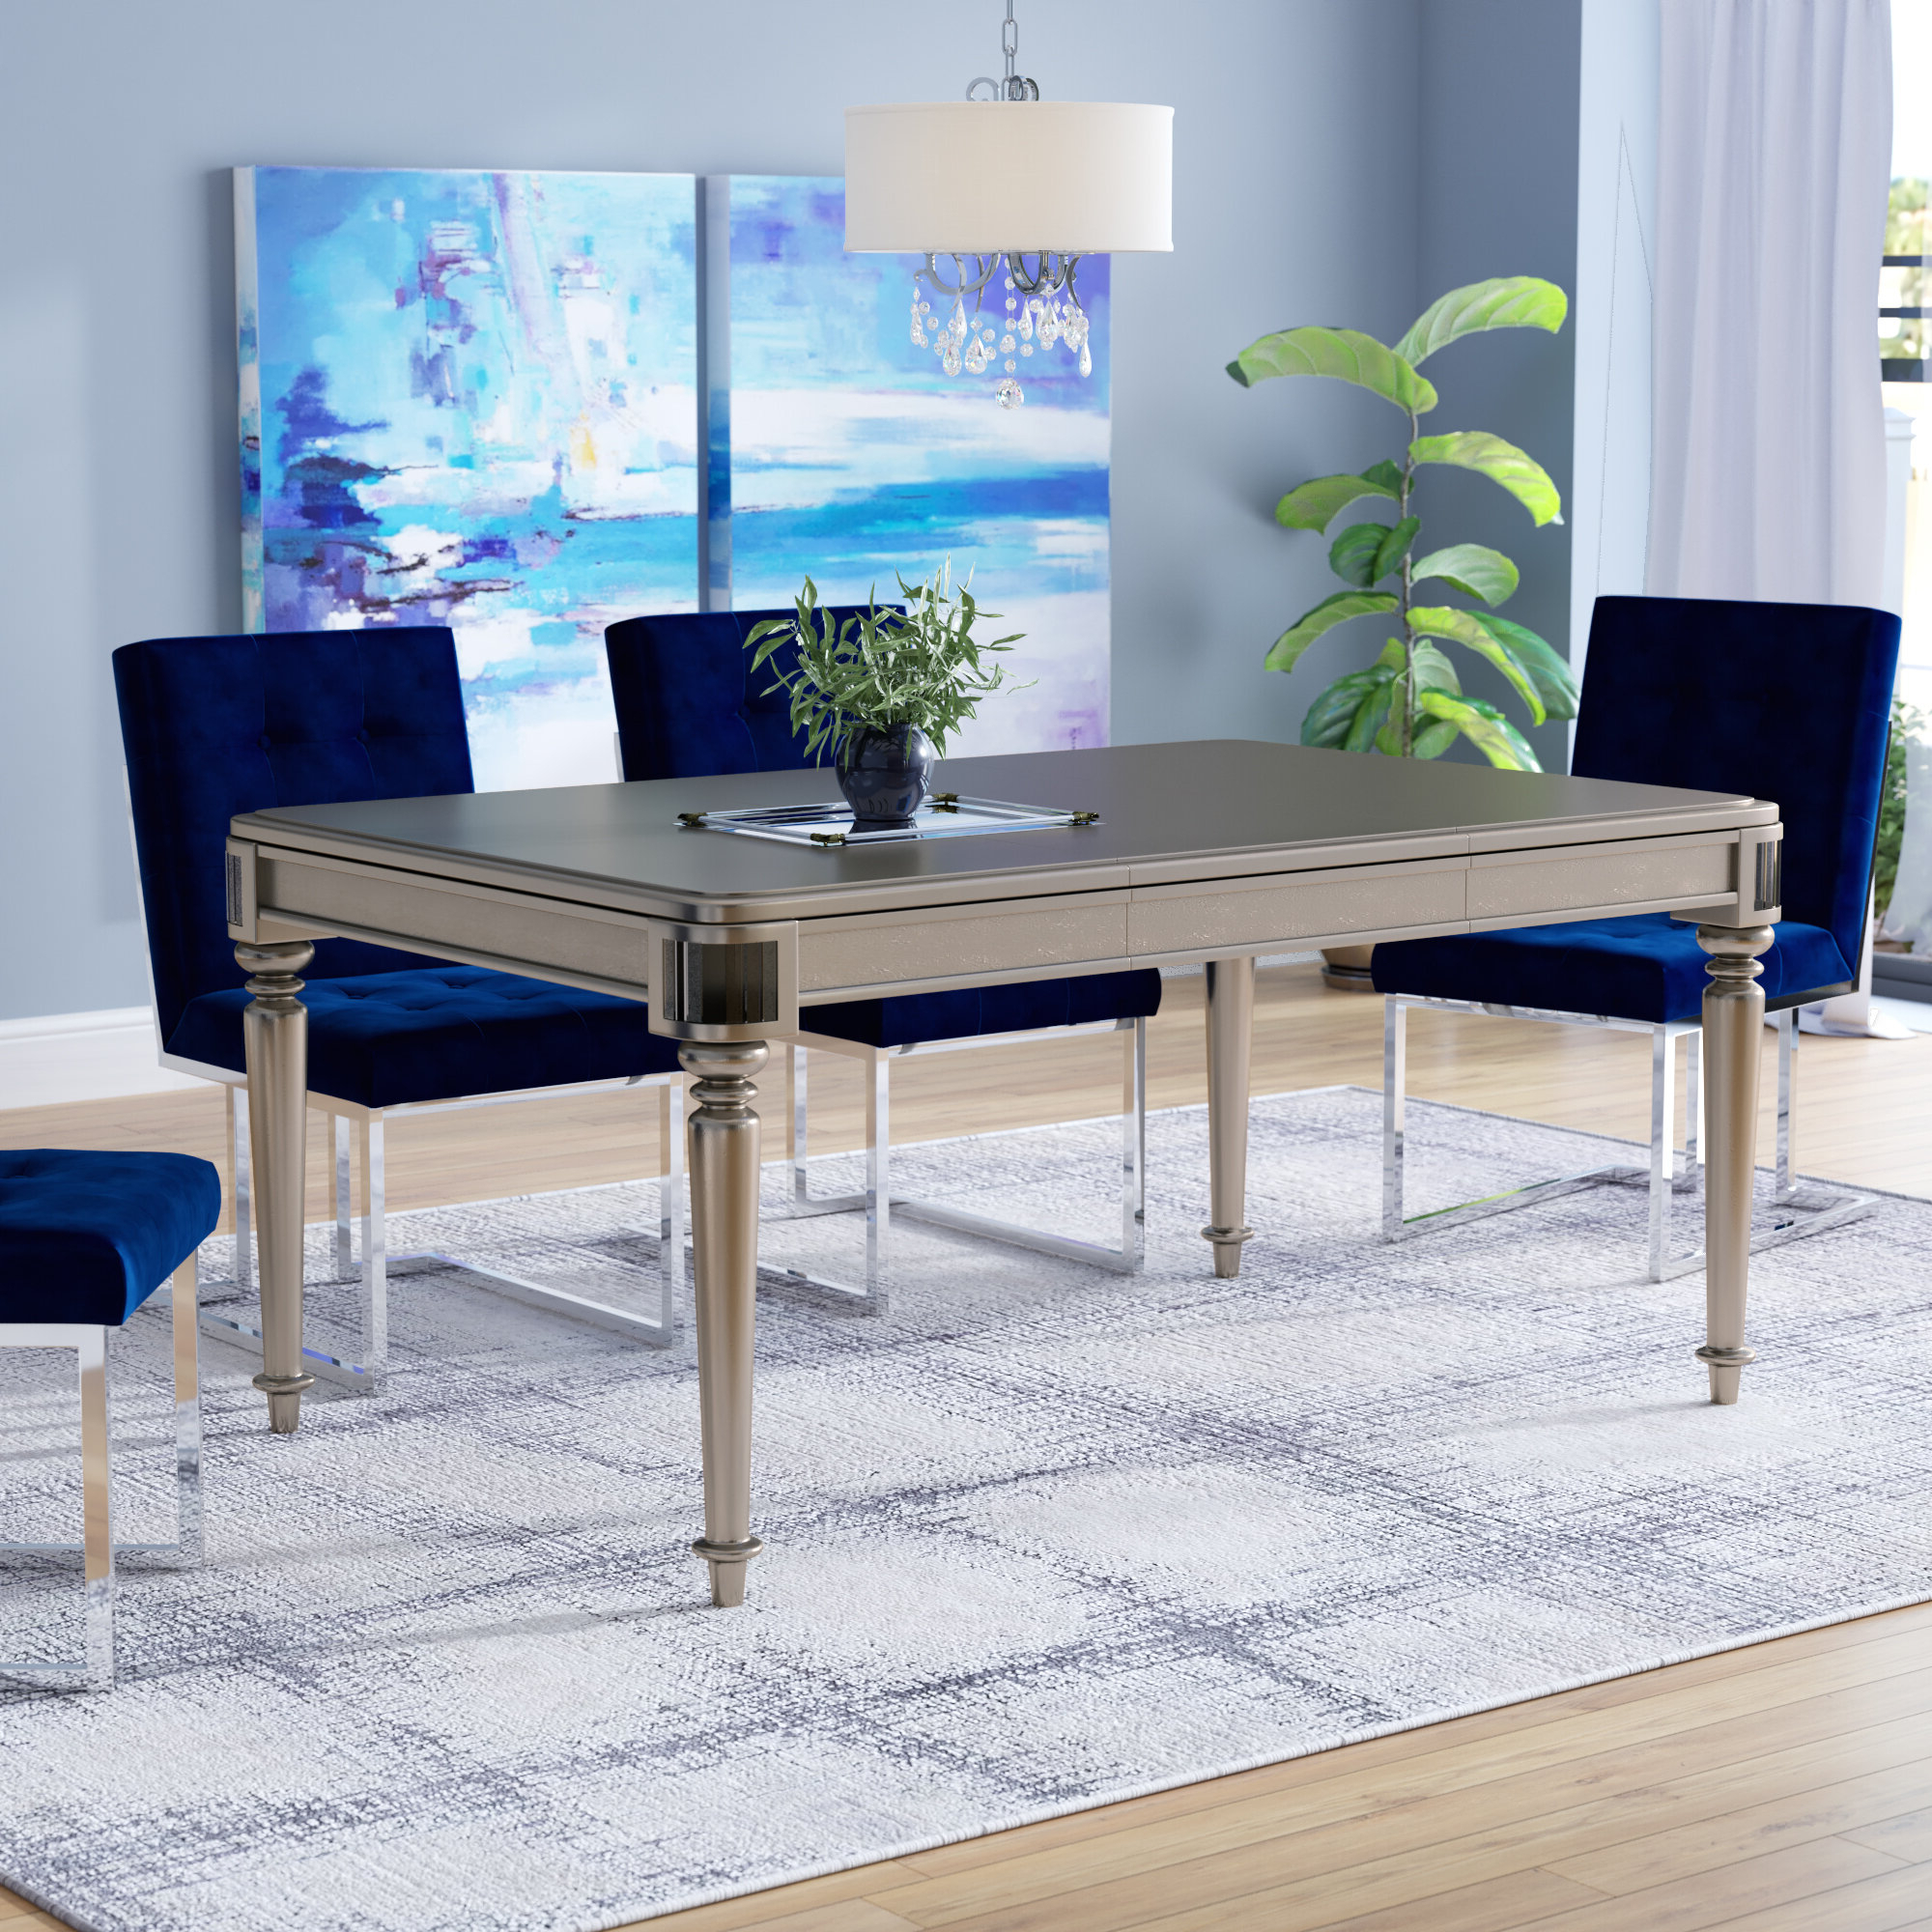 Preferred Transitional 4 Seating Drop Leaf Casual Dining Tables With Regard To House Of Hampton Barney Drop Leaf Extendable Dining Table (View 15 of 30)